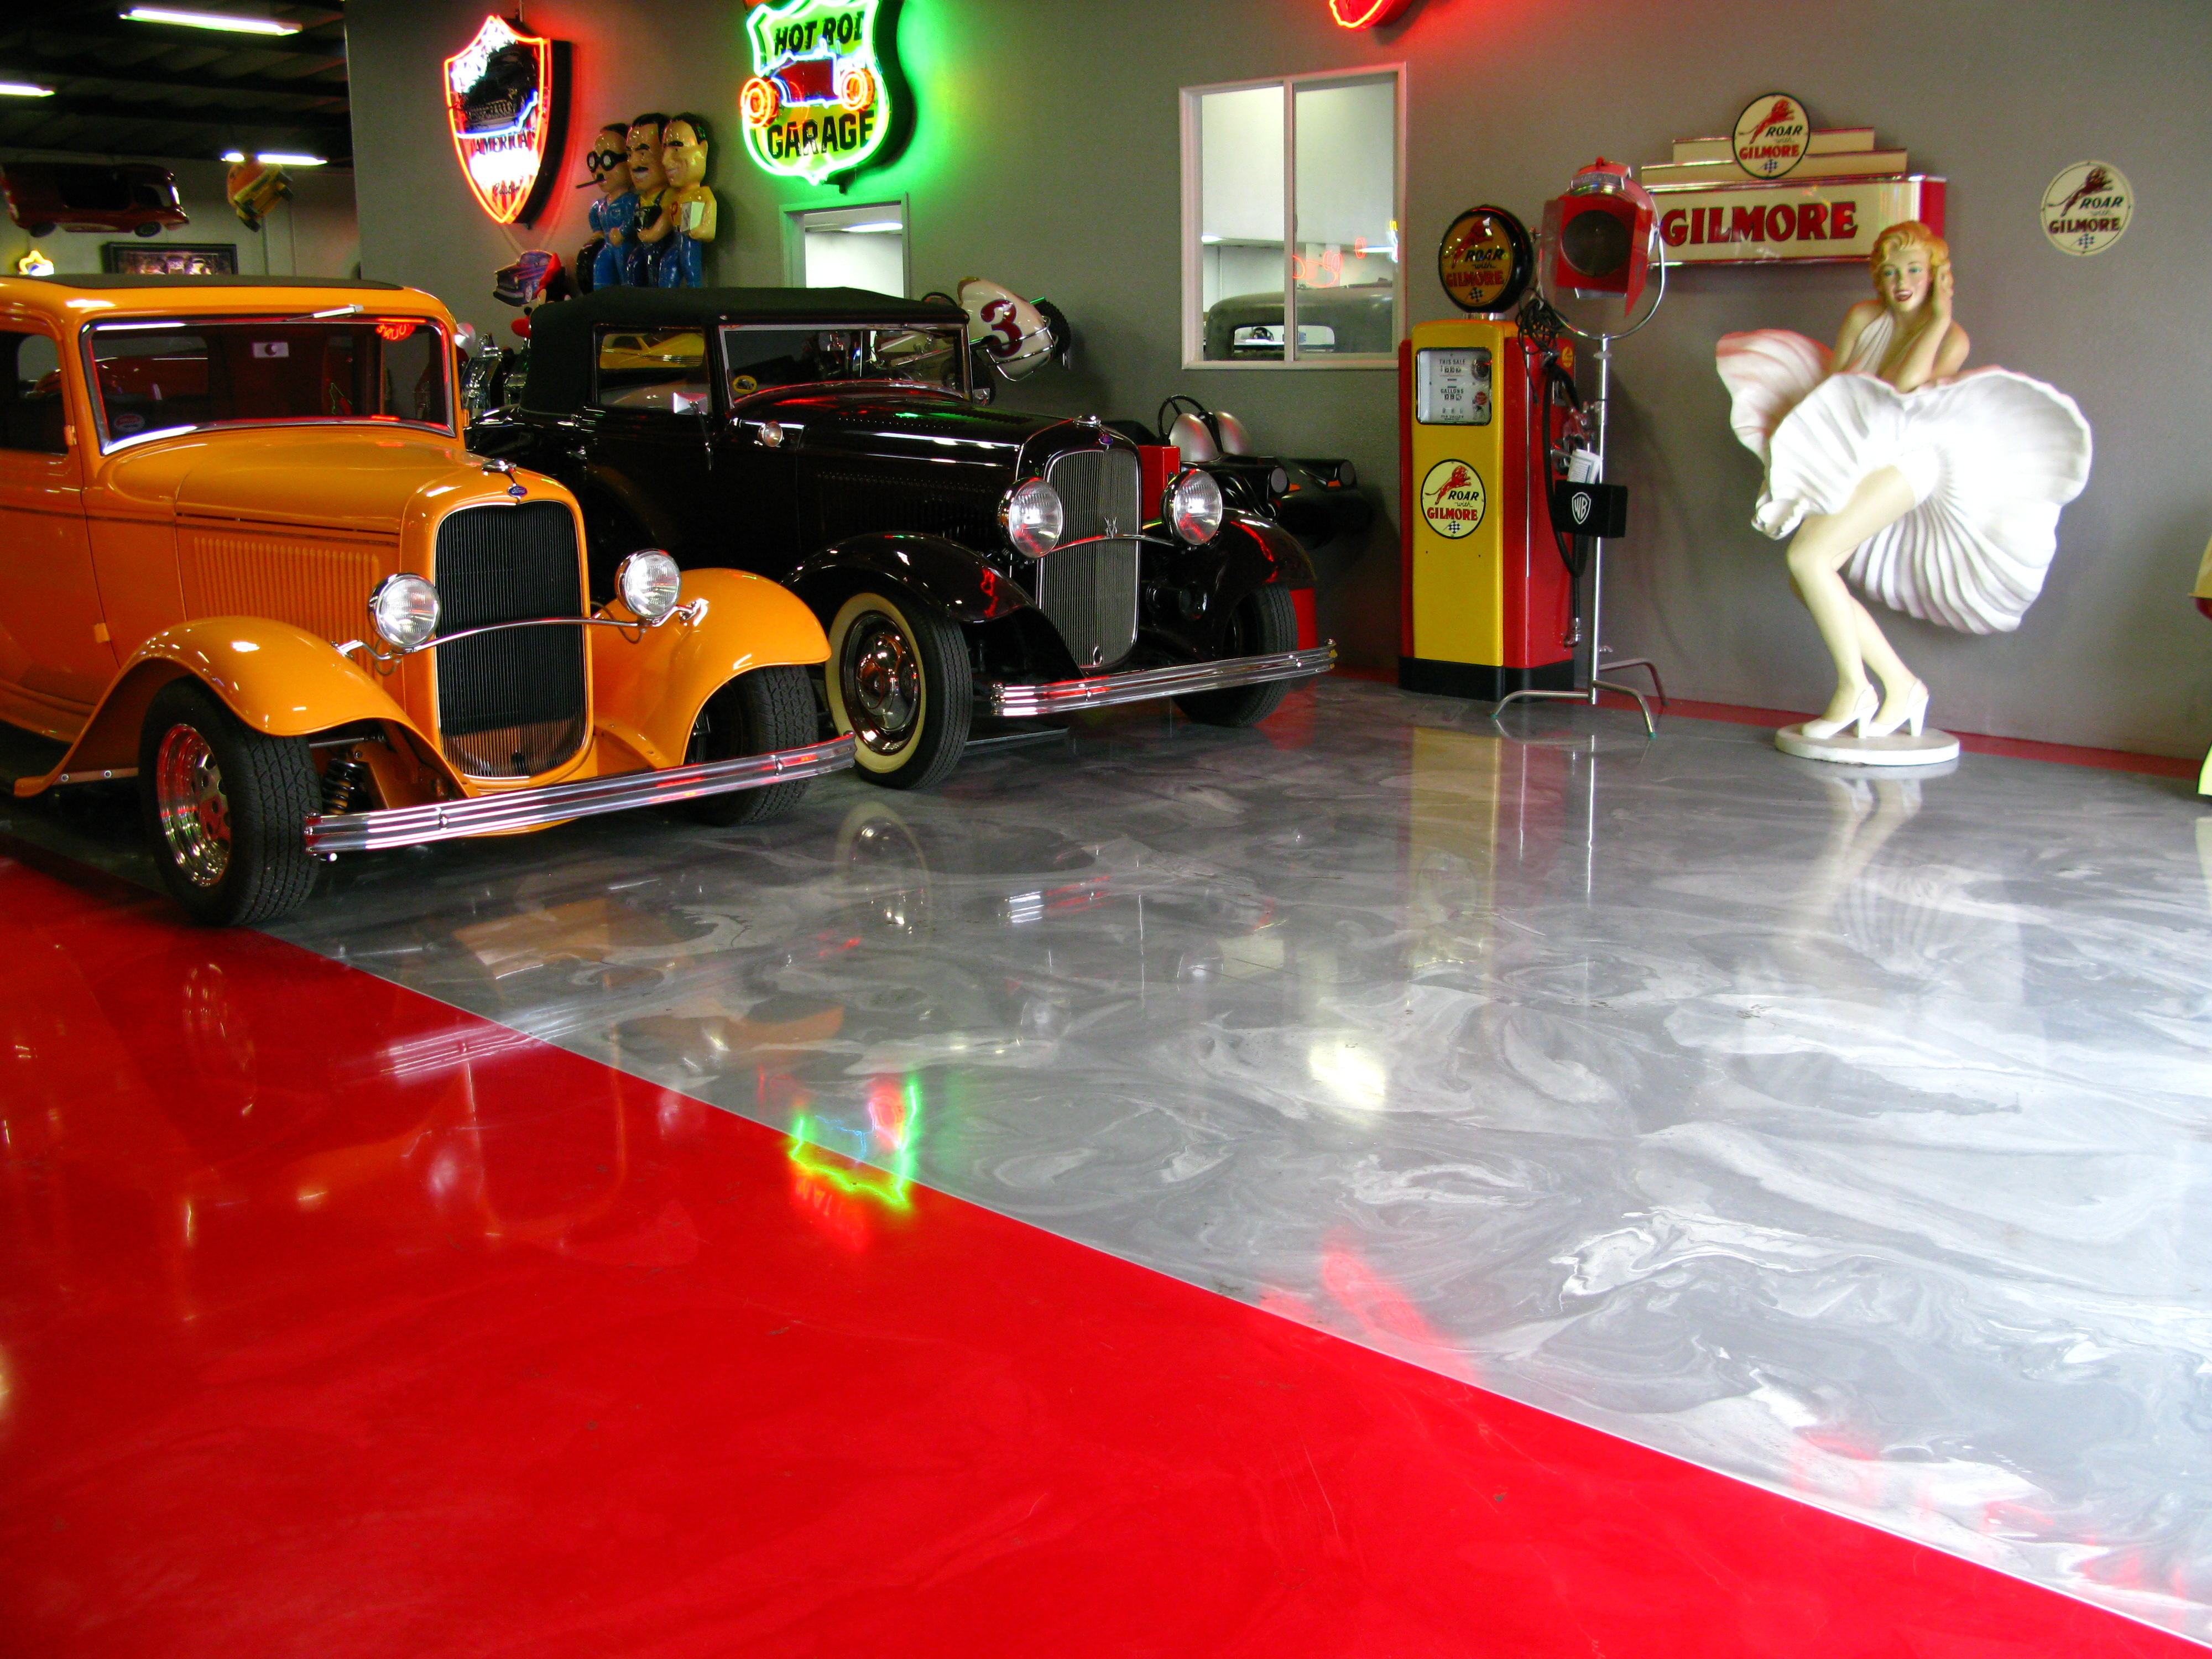 Garage Epoxy Tucson Quest Building Products Decorative Epoxy Garage Floor Image